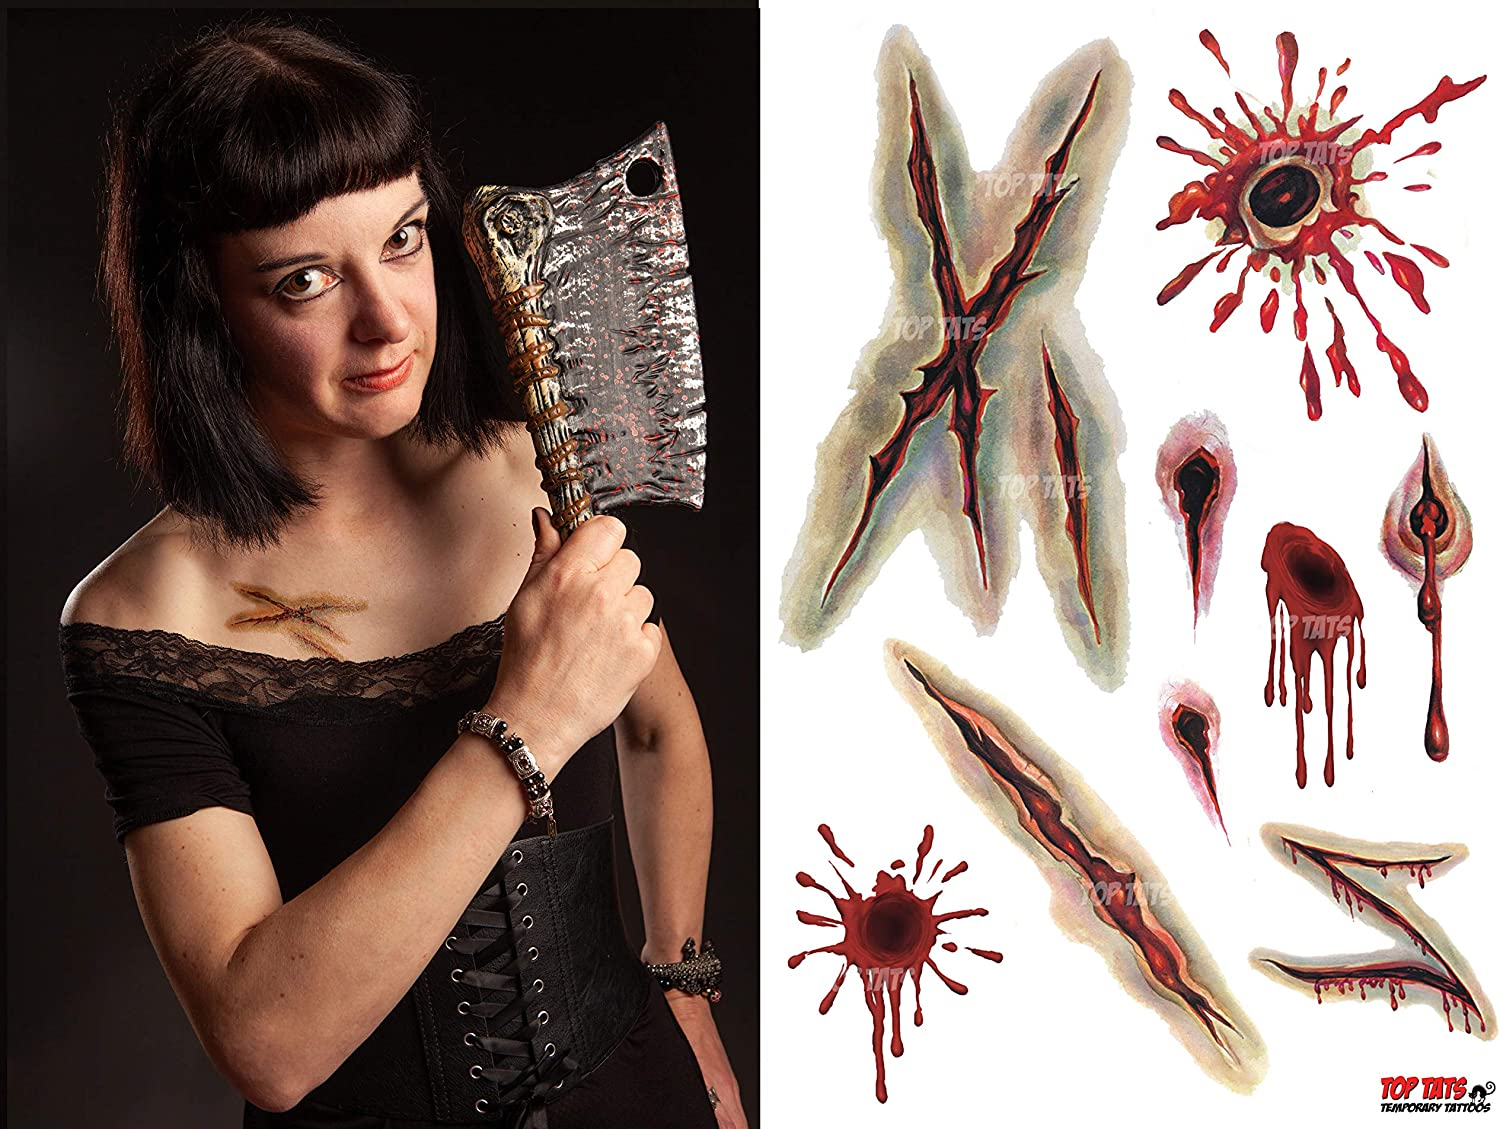 BULLET WOUND HALF FACE HORROR MASK LATEX HALLOWEEN FANCY DRESS COSTUME ACCESSORY